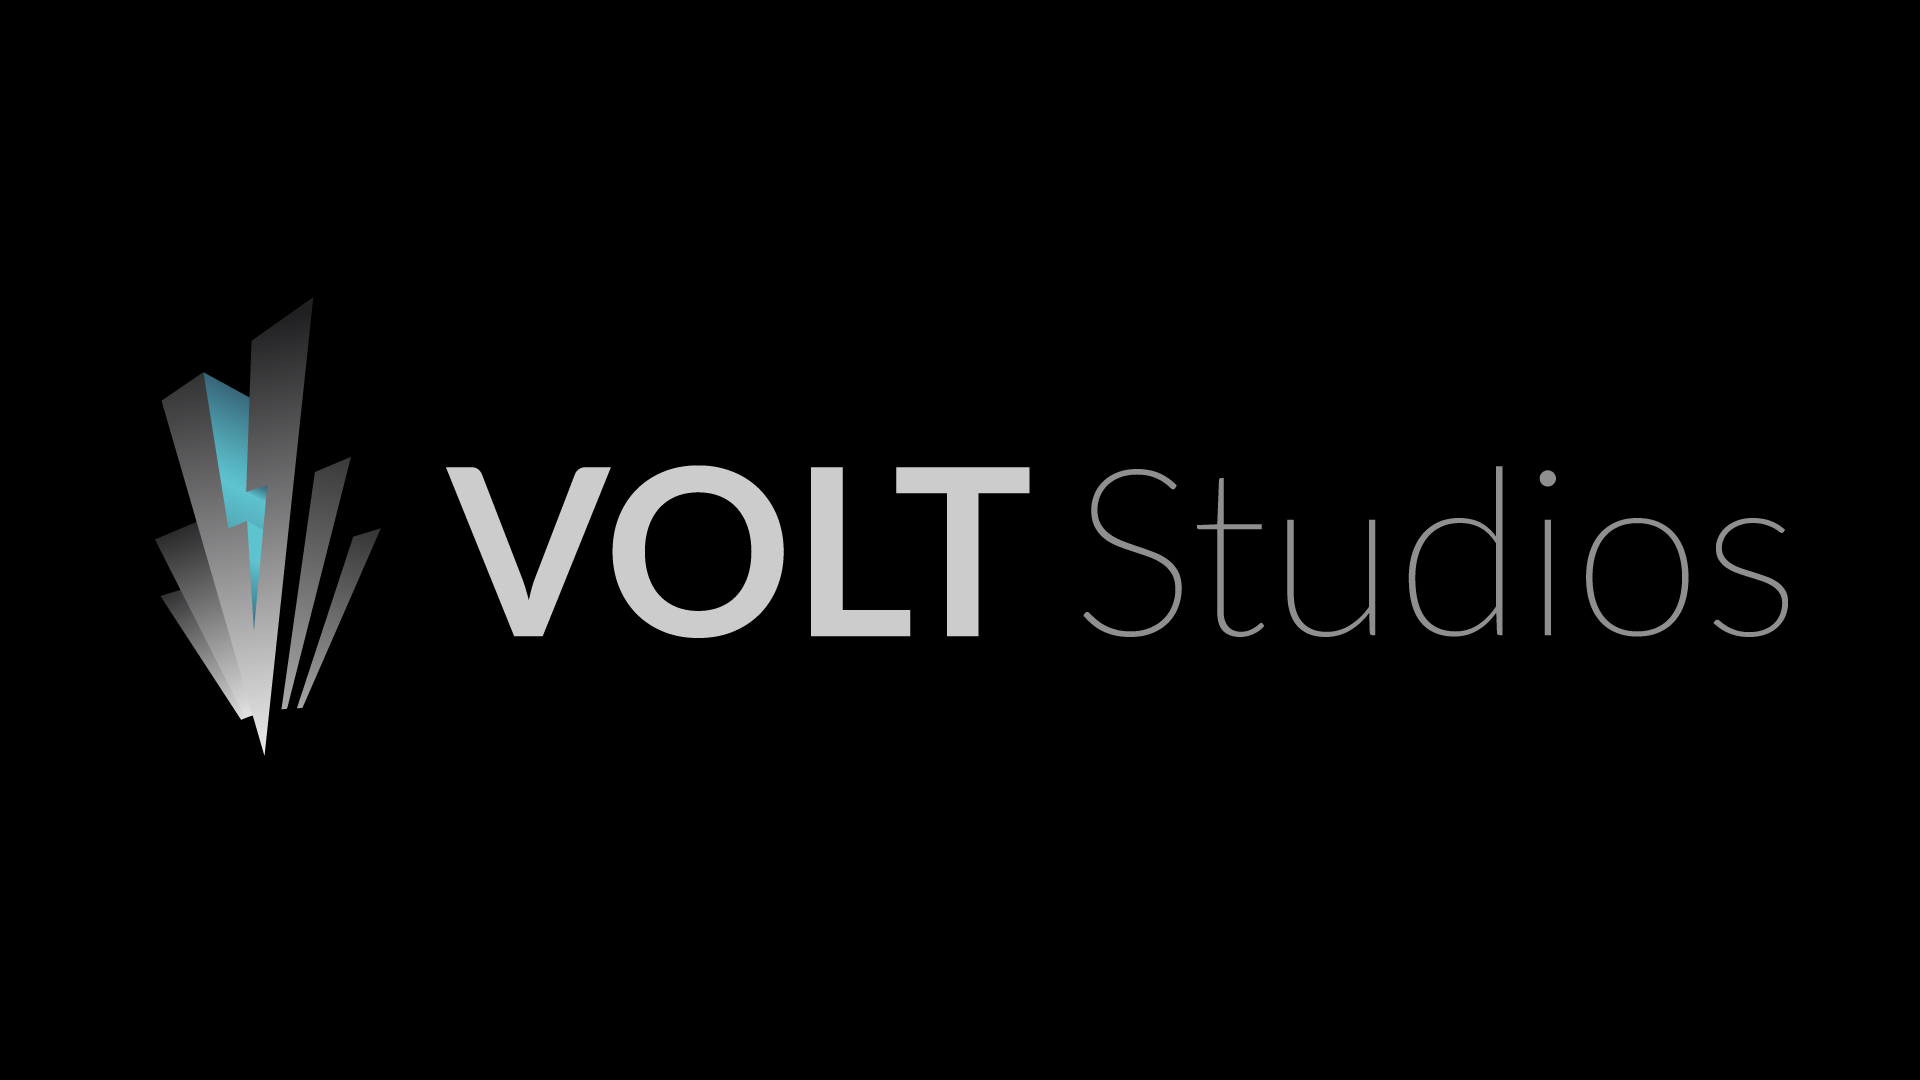 Overlay Image for VOLT Studios COVID-19 Response